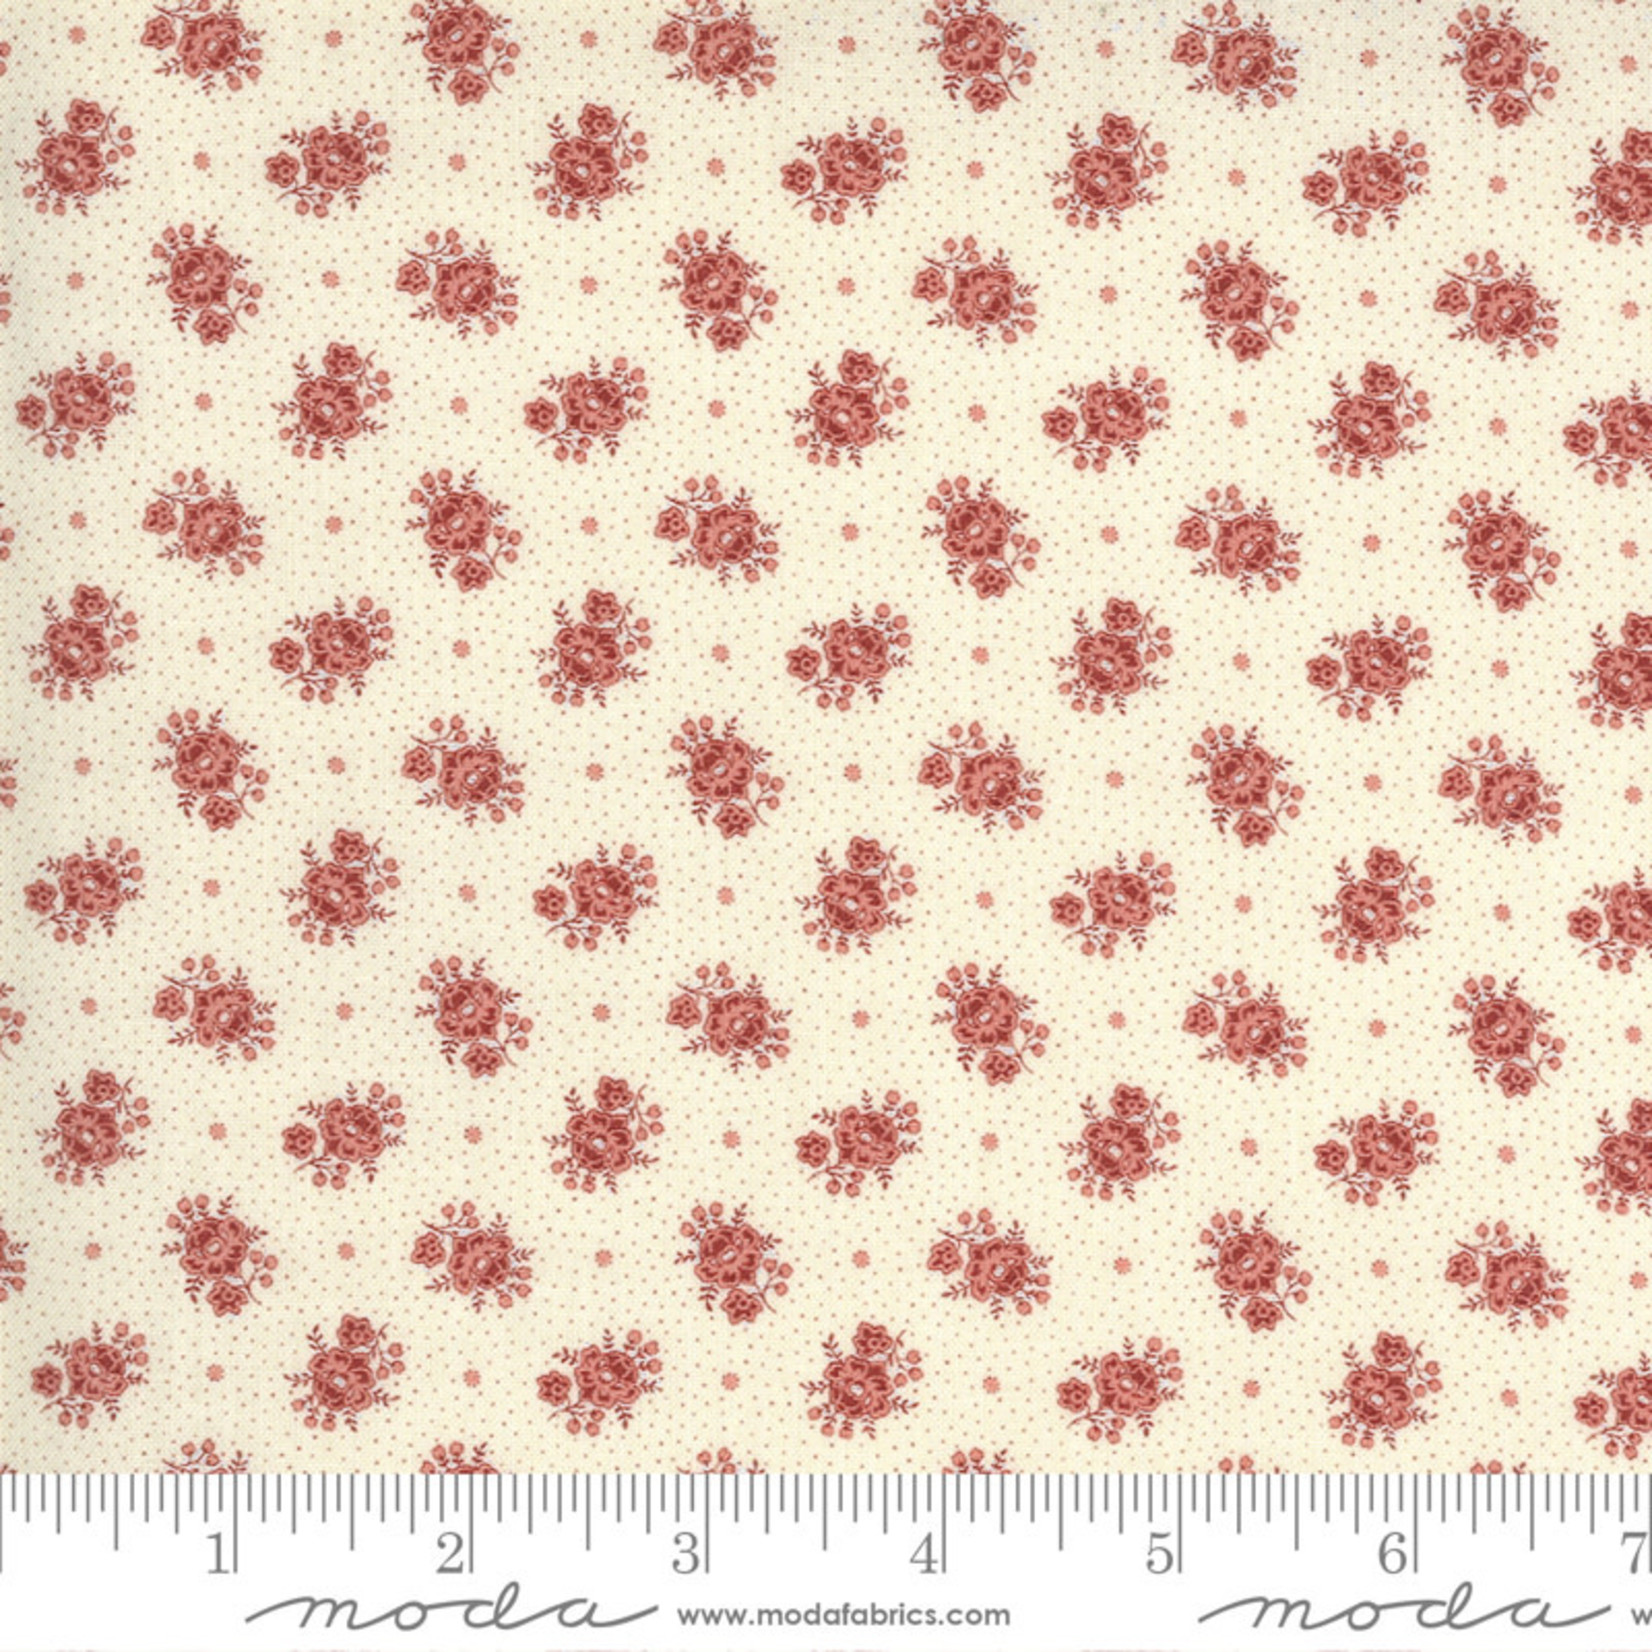 FRENCH GENERAL Jardins De Fleurs, Luxembourg, Pearl 13896-15 $0.20 per cm or $20/m